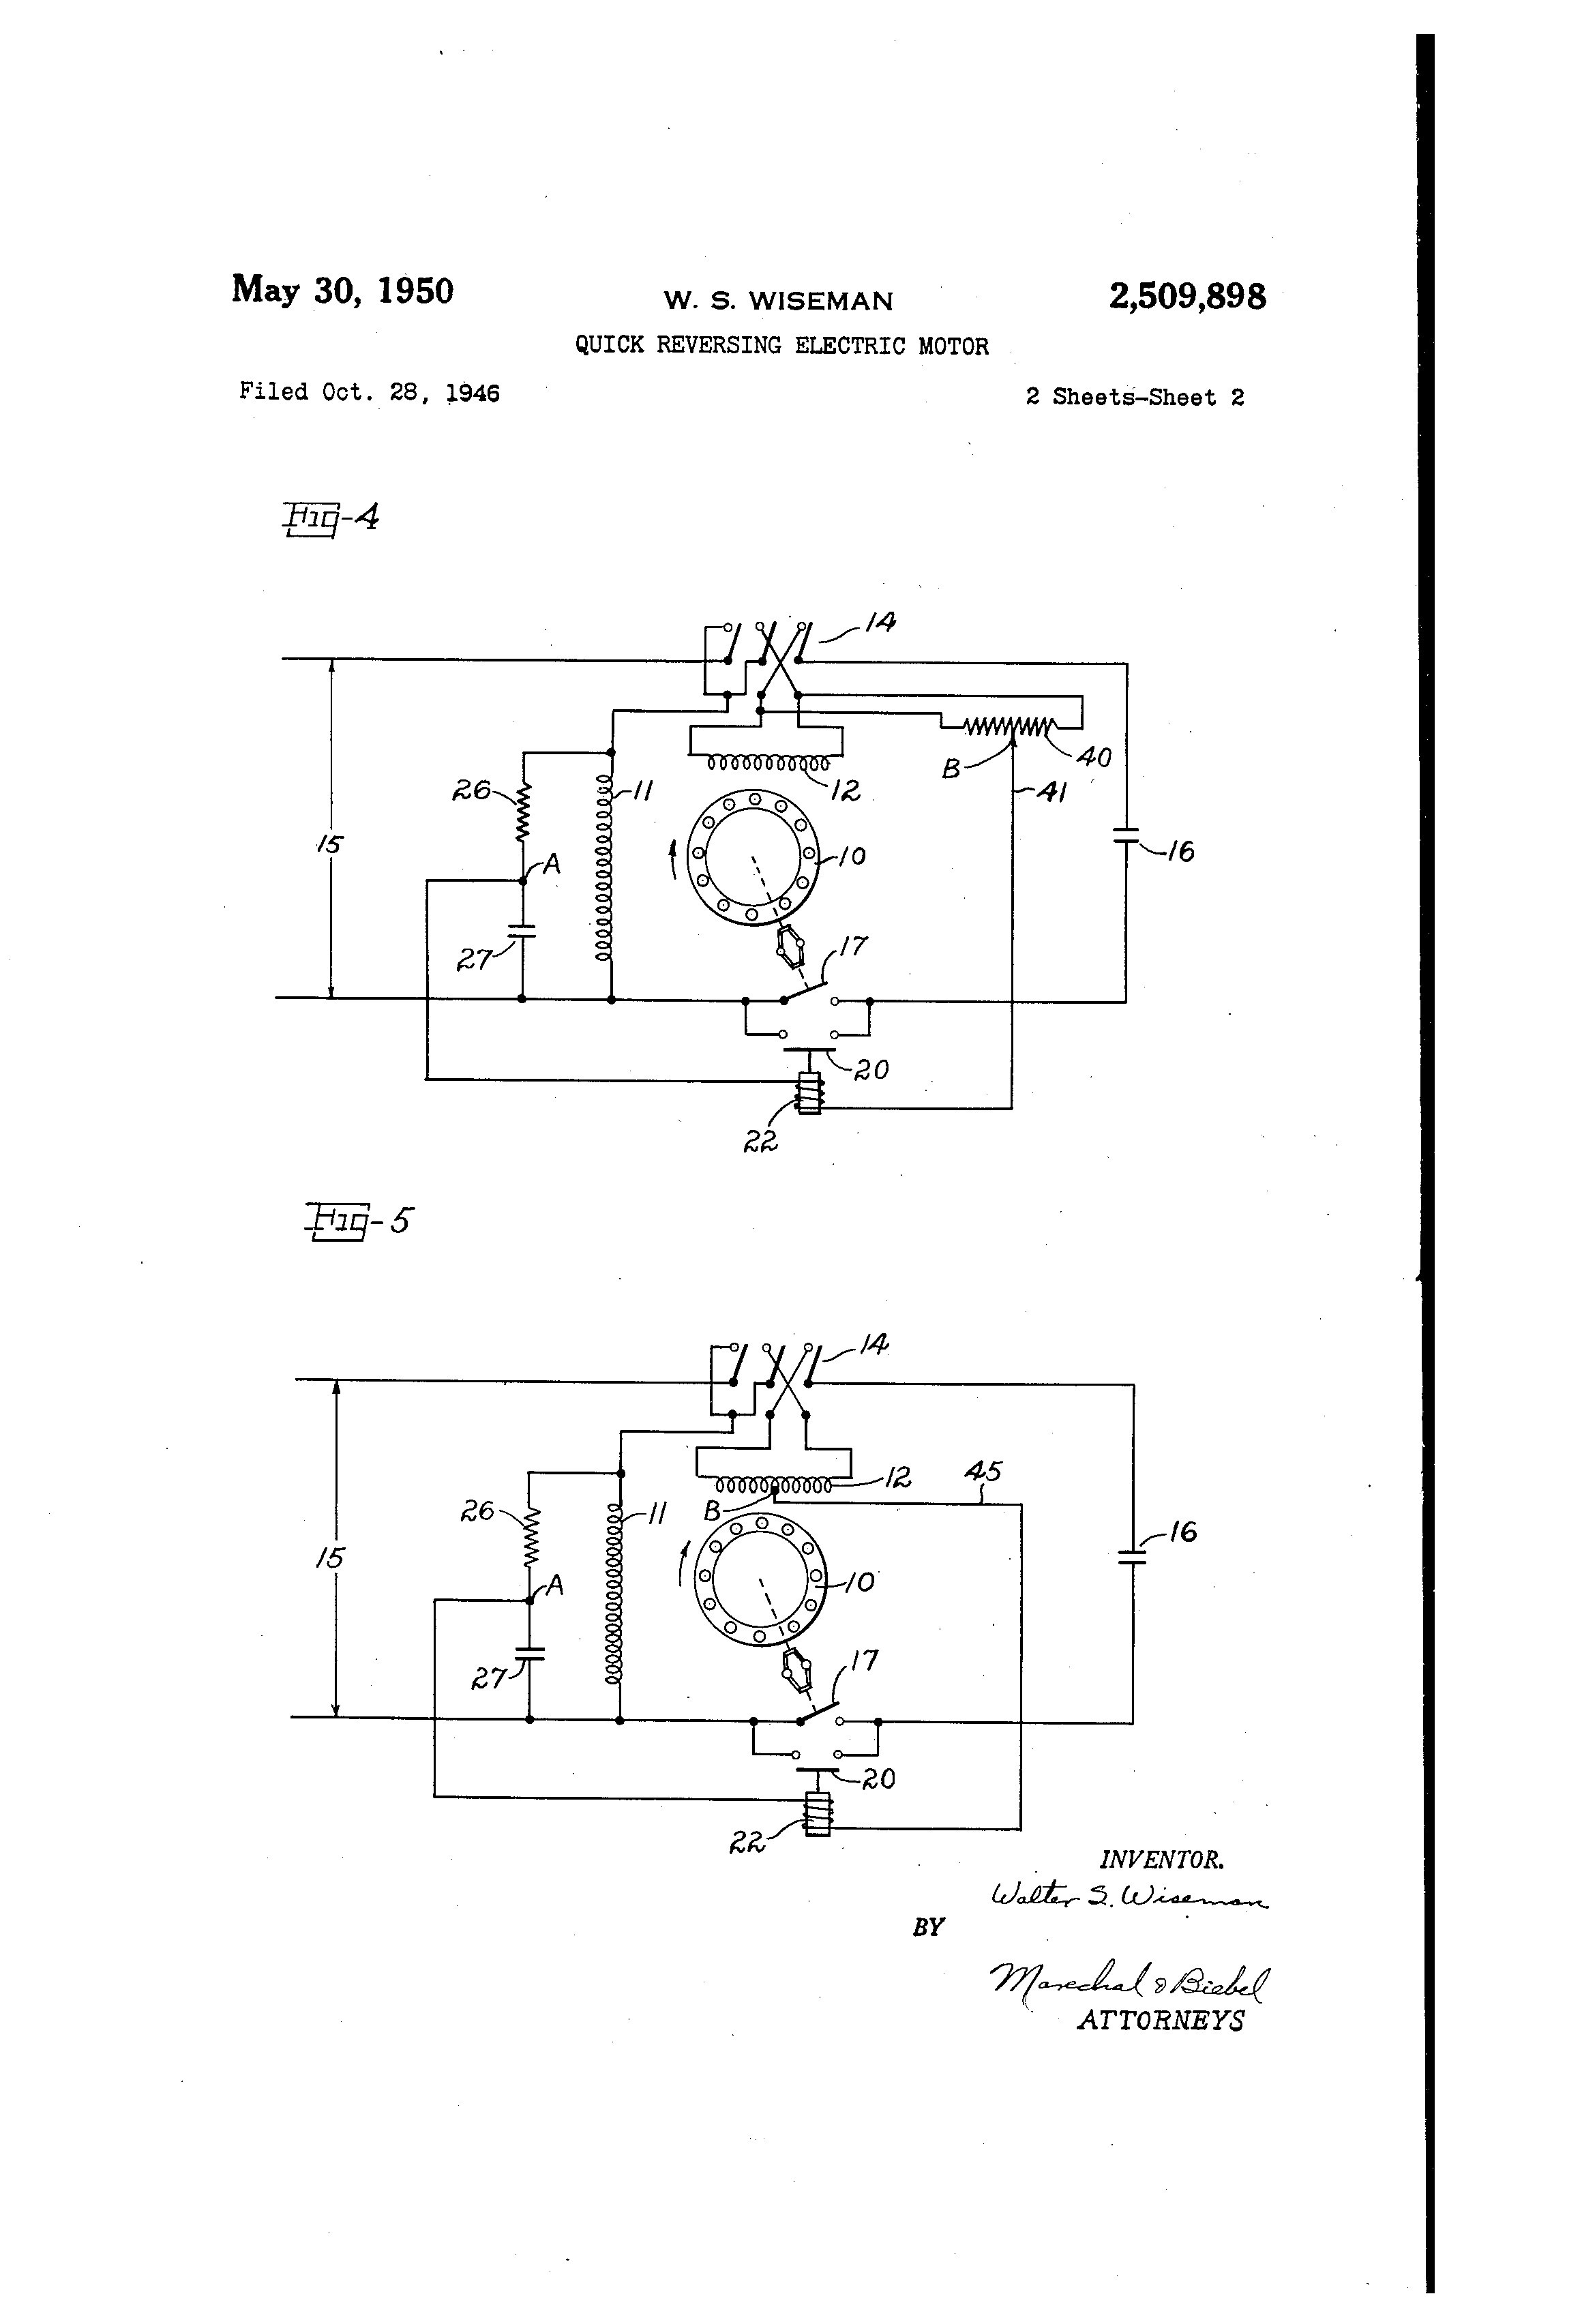 Lead single phase motor wiring diagram unique